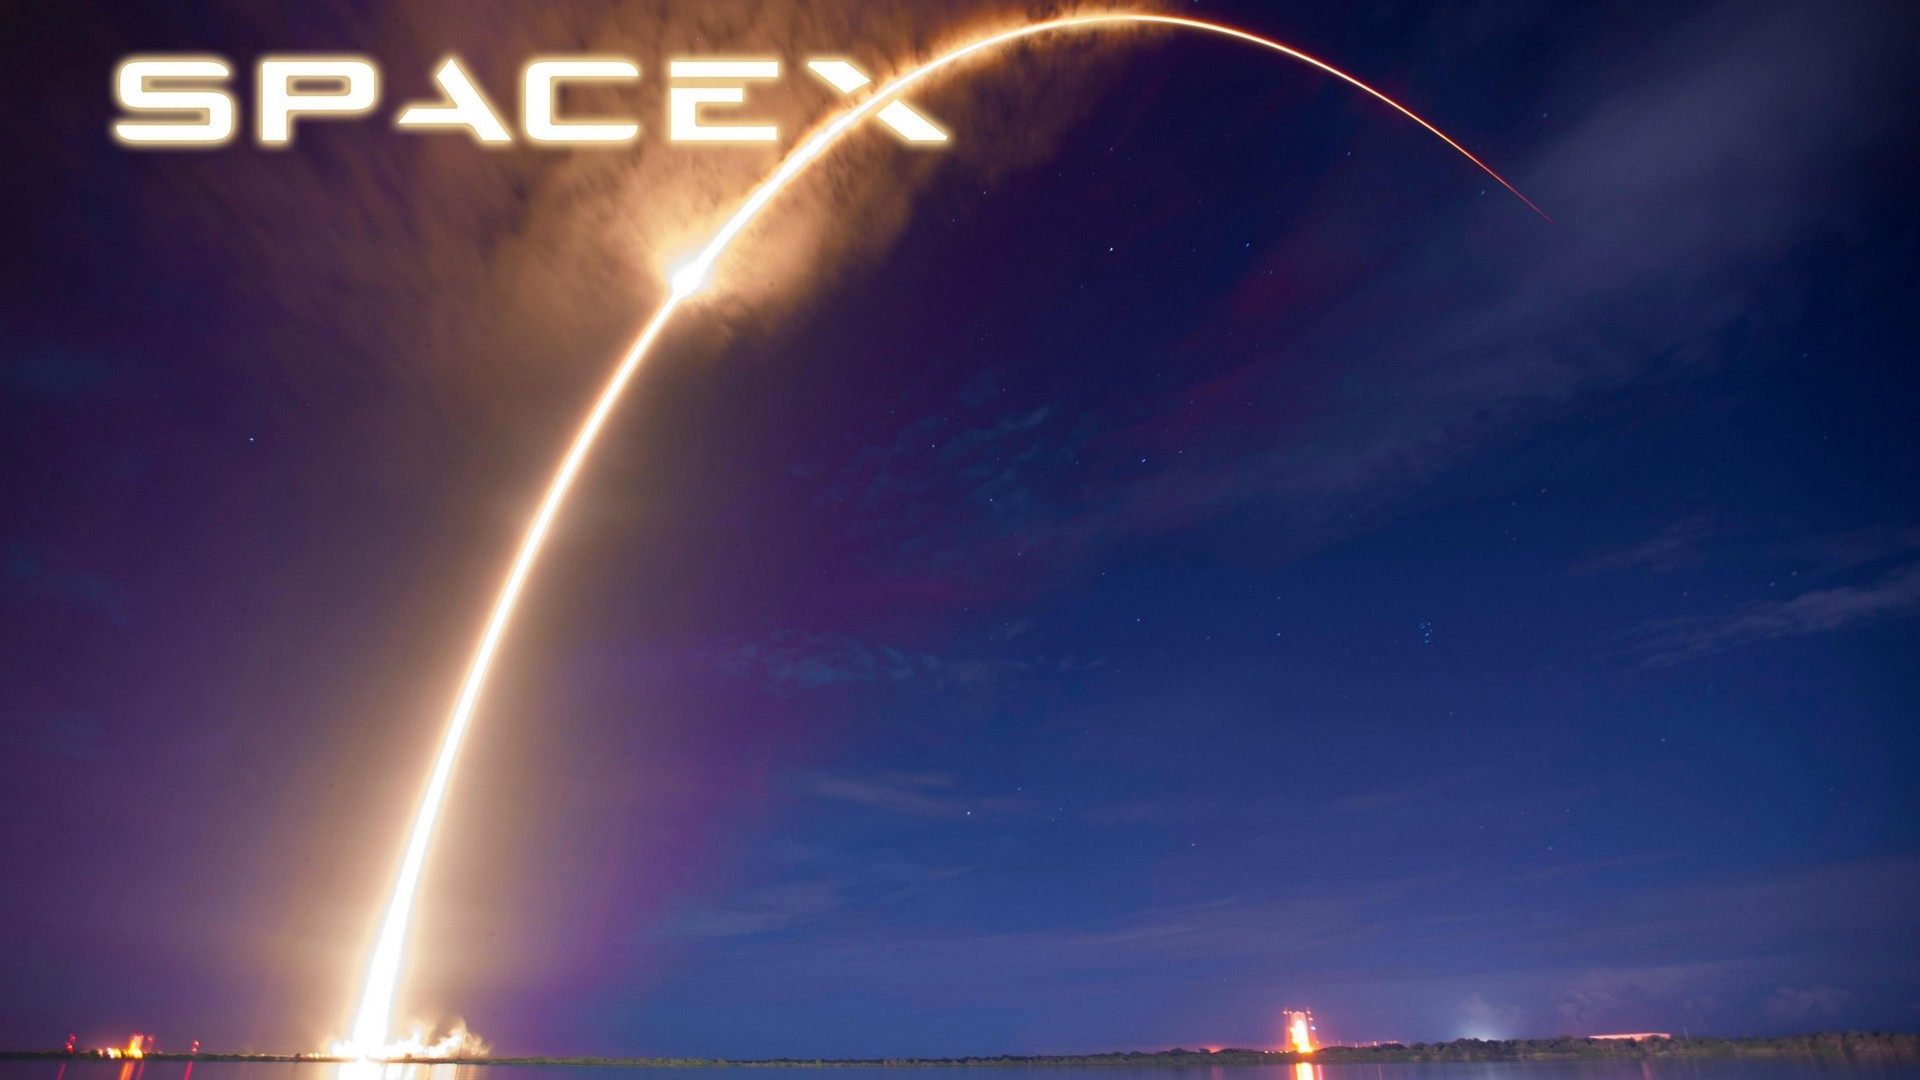 Spacex Full HD Wallpaper